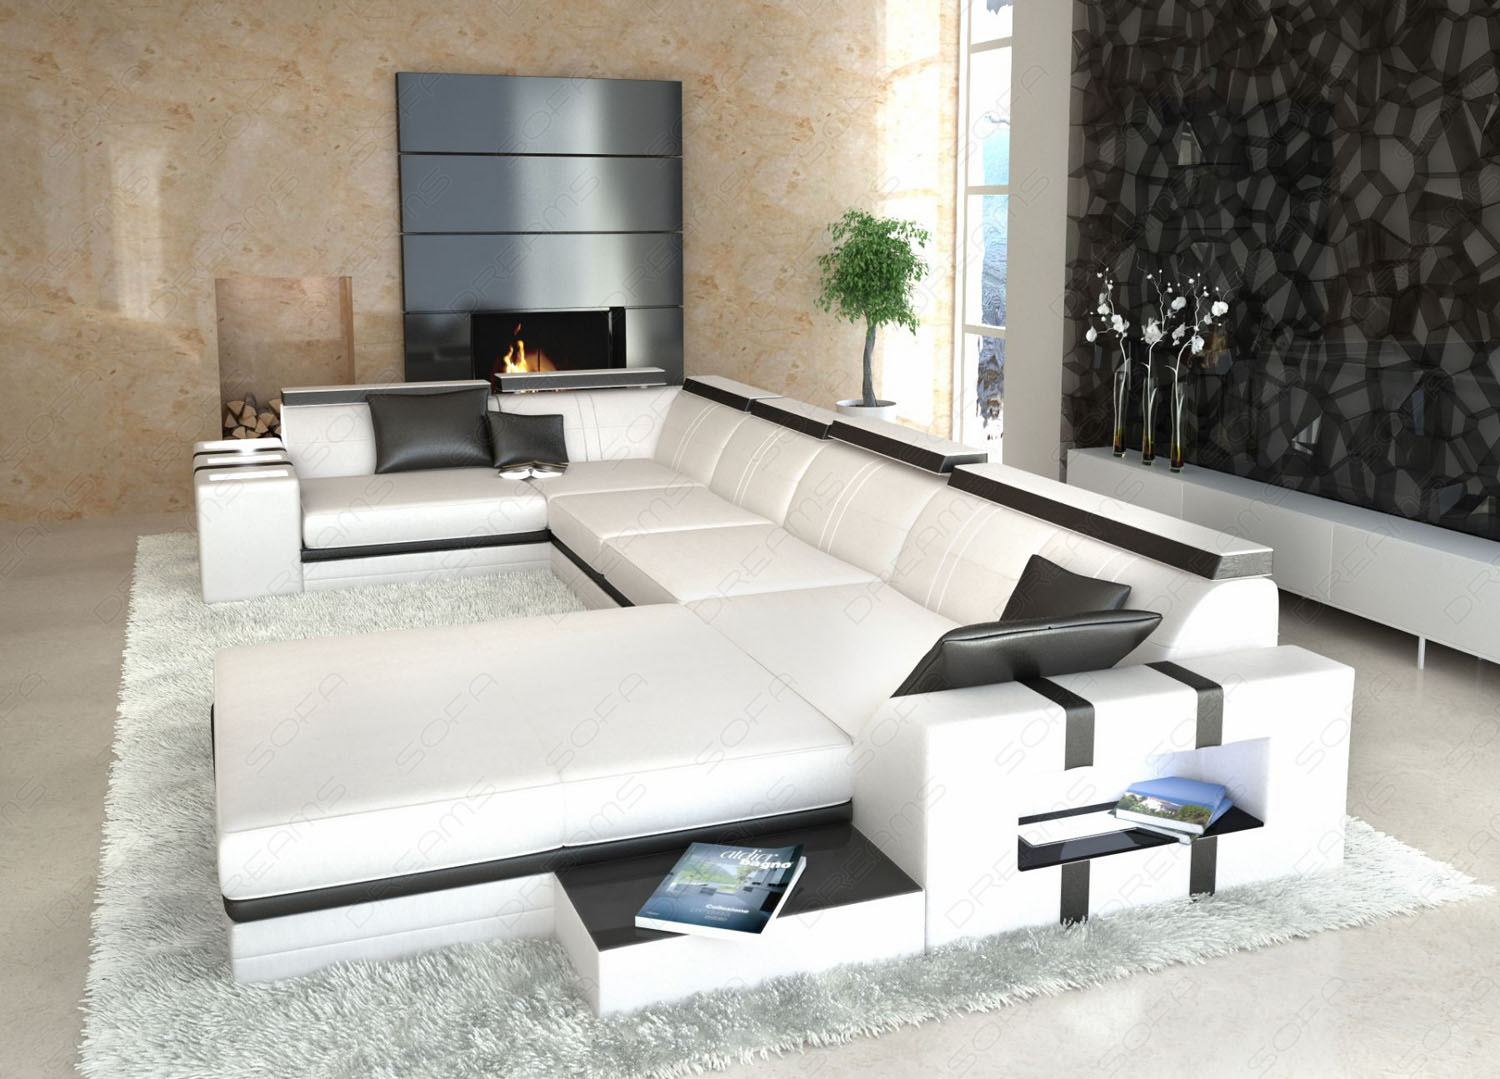 sofa u form kaufen innenr ume und m bel ideen. Black Bedroom Furniture Sets. Home Design Ideas